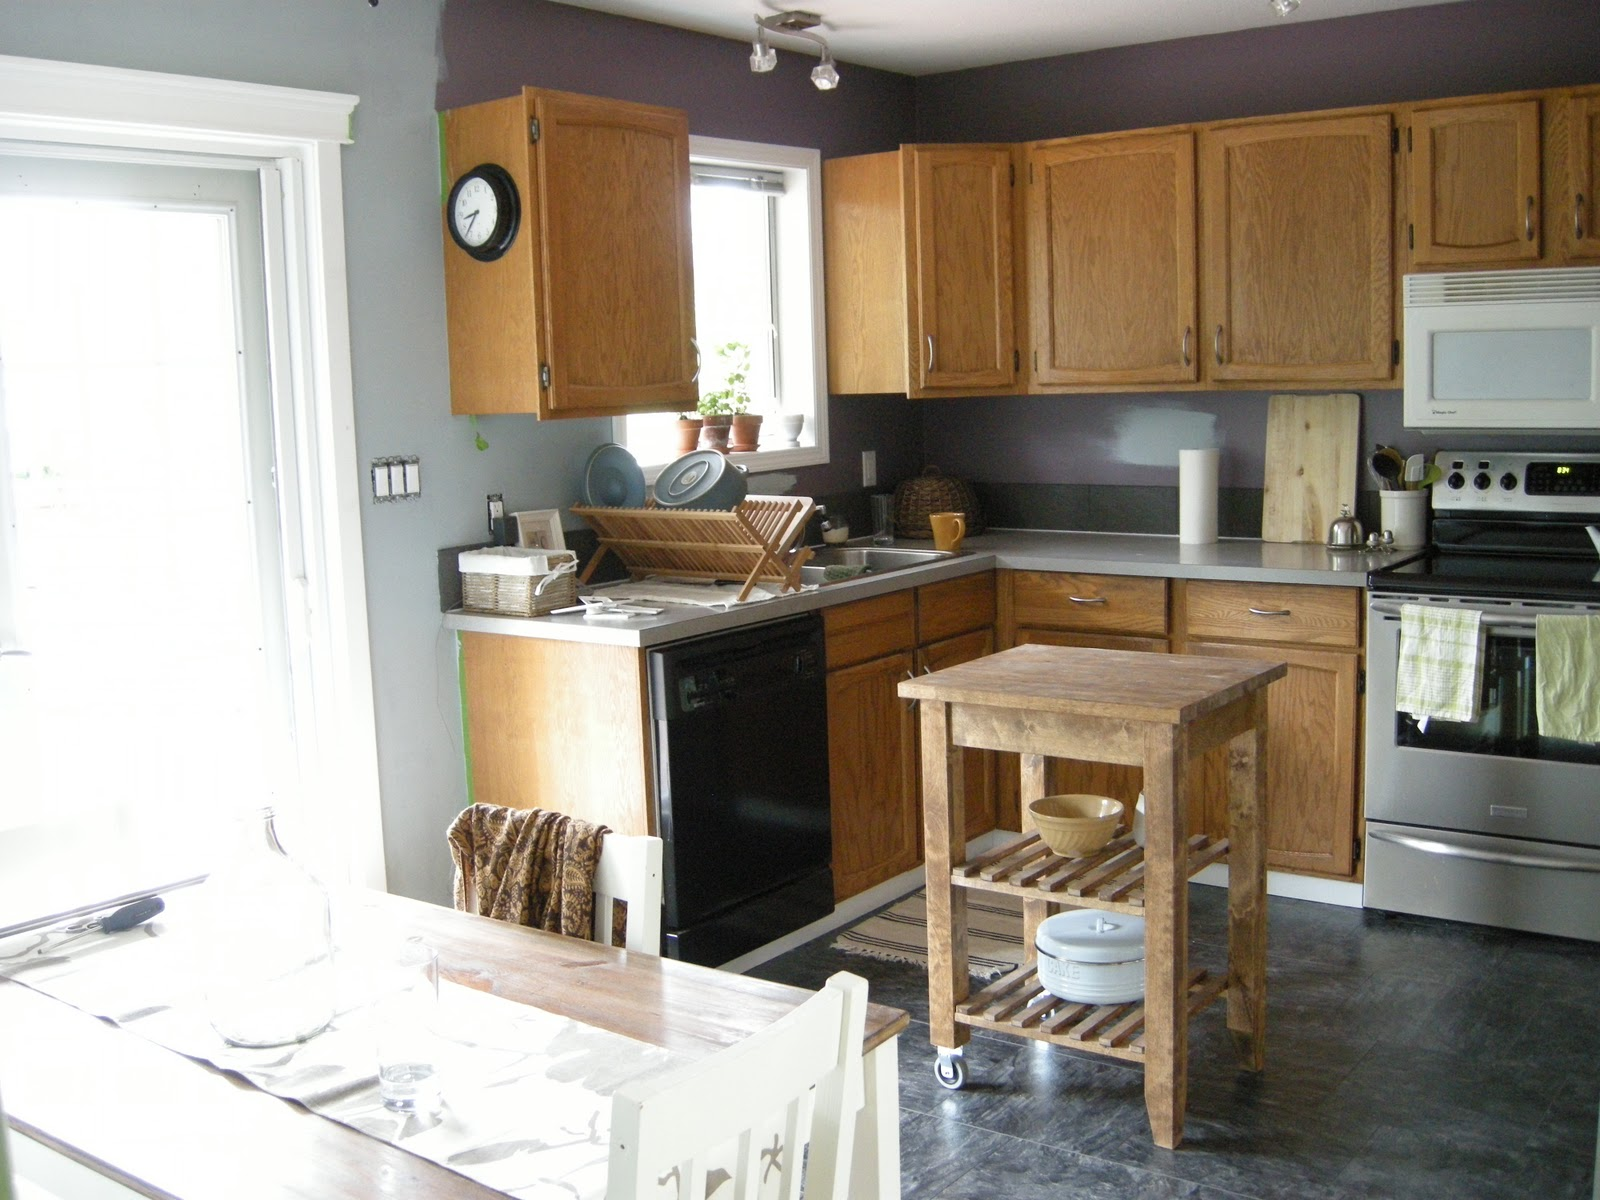 10 decorating ideas for a gray kitchen walls | czytamwwannie's